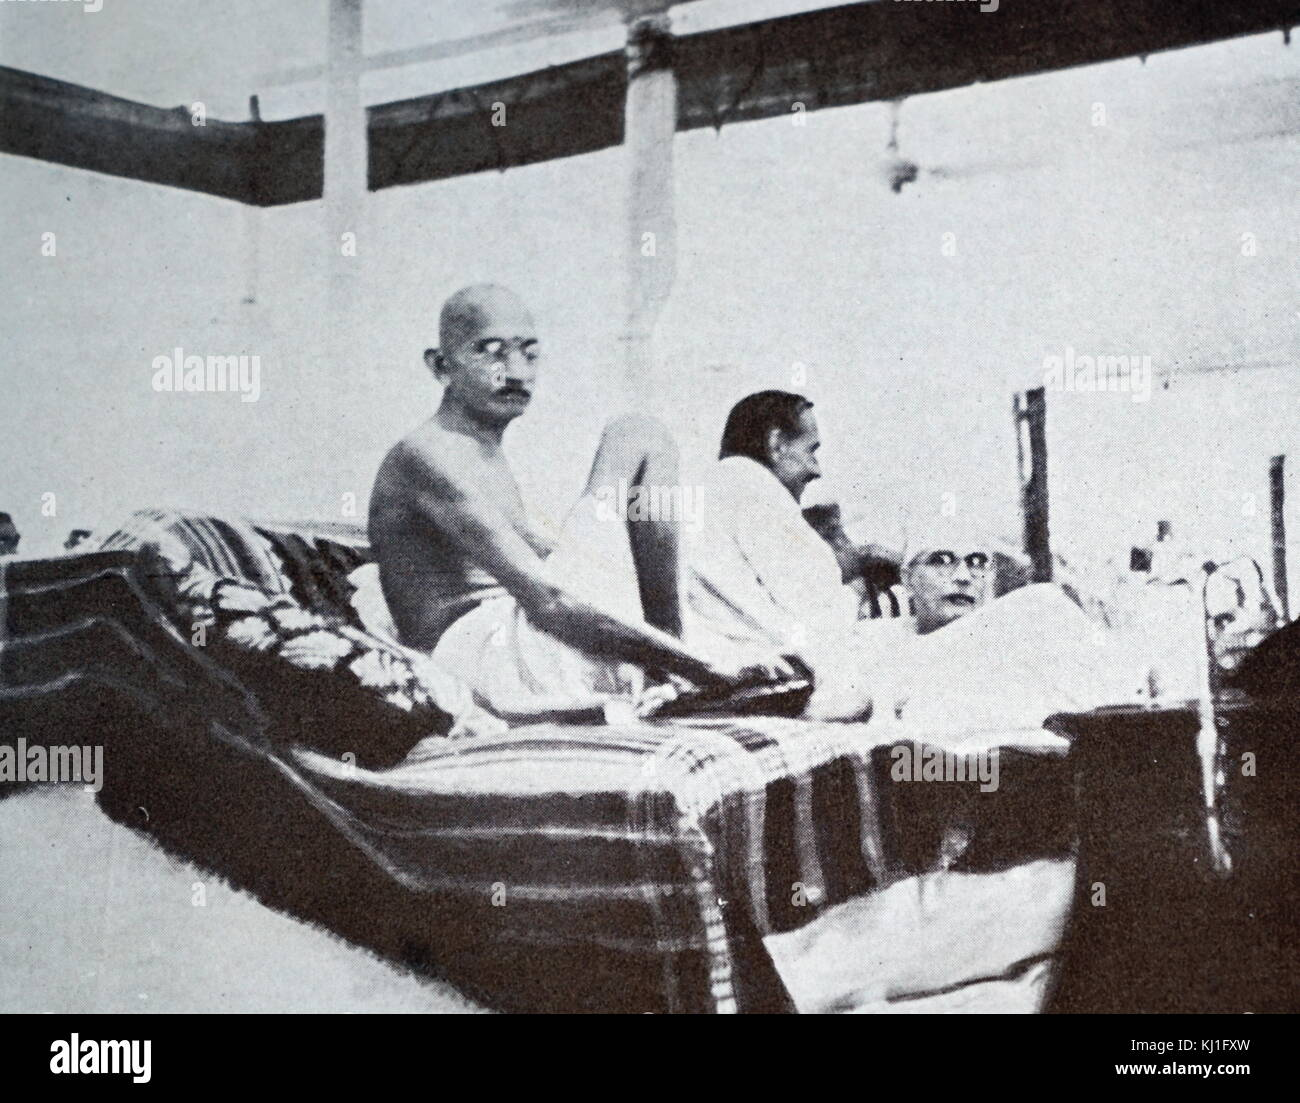 Mohandas Karamchand Gandhi (1869 – 1948) at a meeting of the Indian National Congress, 1940. Gandhi was the preeminent - Stock Image